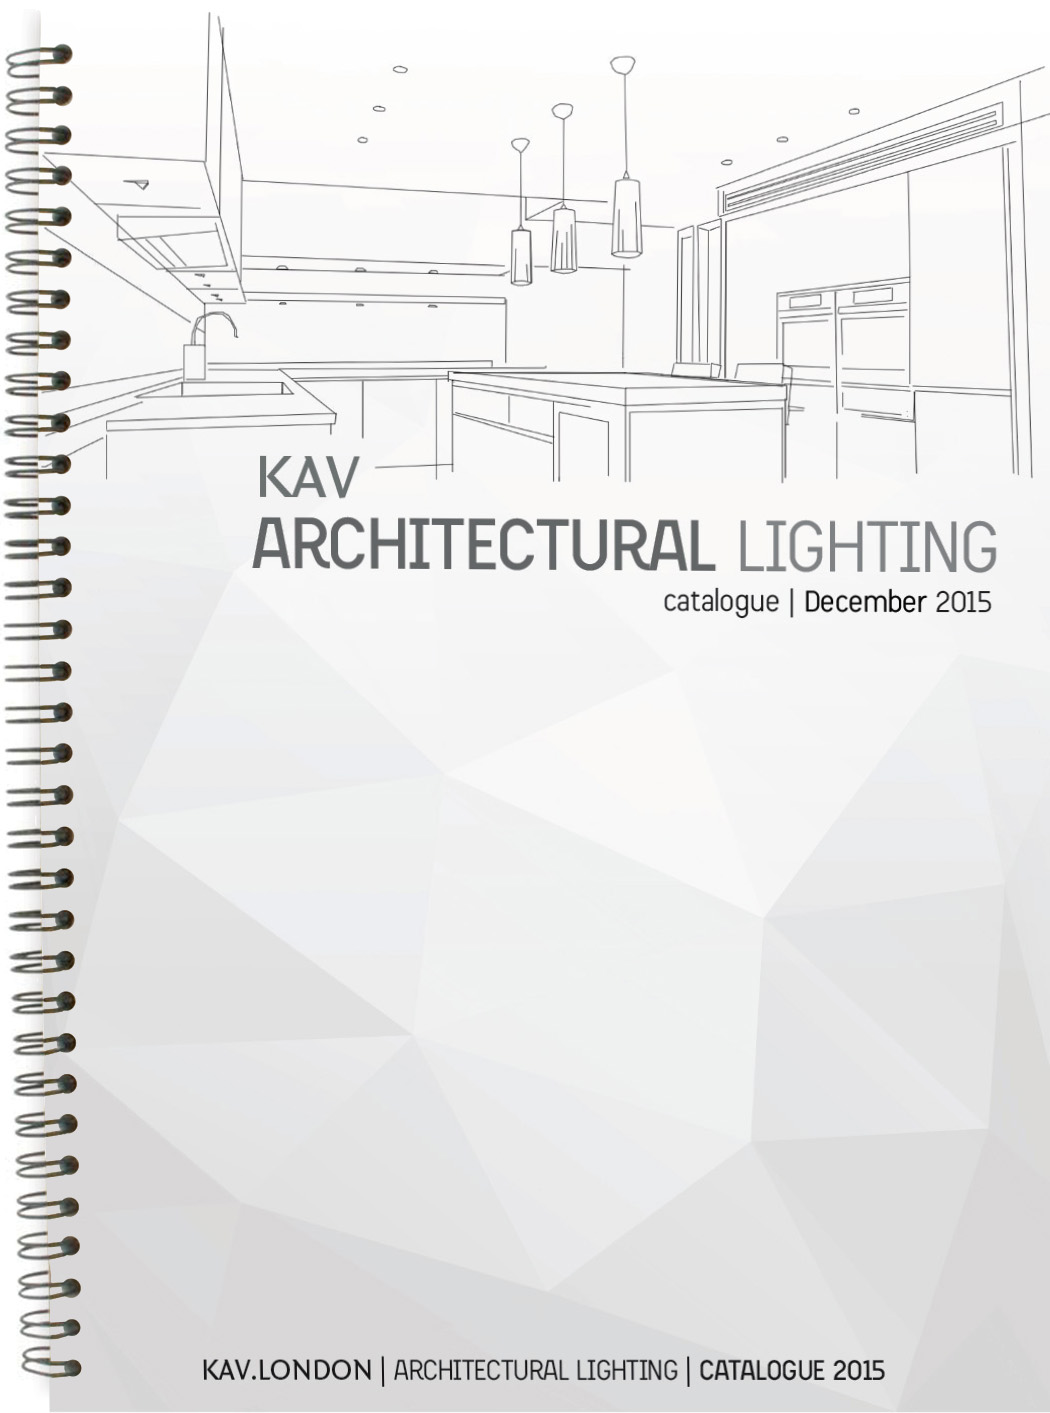 KAV-Architectural-Lighting 1 bound